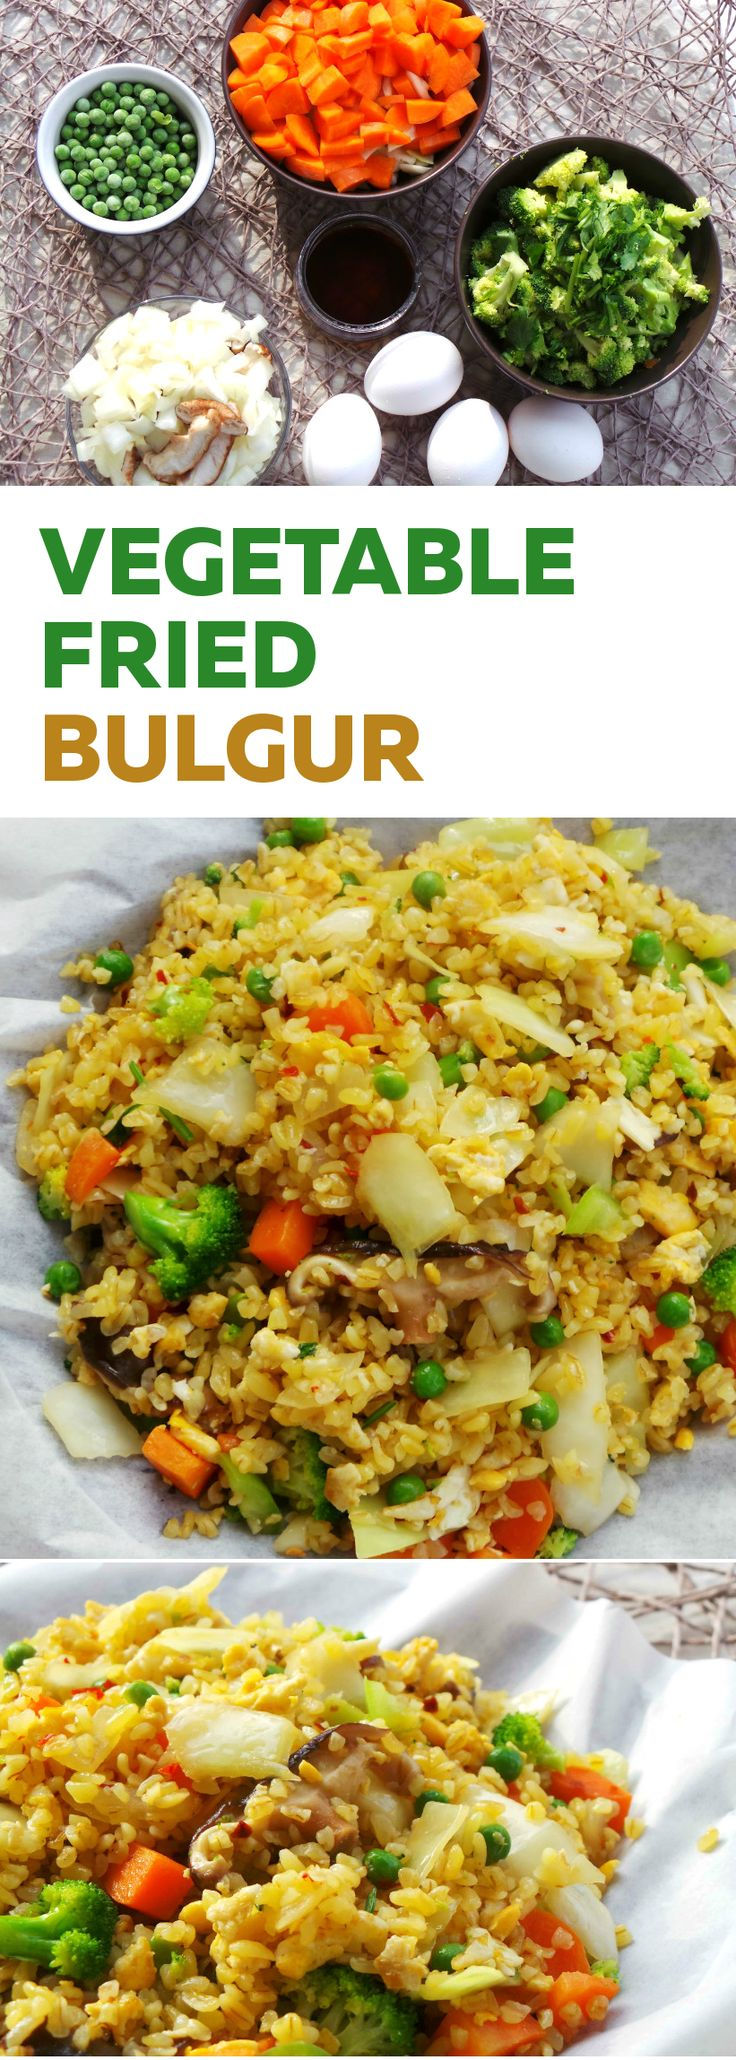 Delicious quick healthy vegetable fried rice recipe - except instead of rice you use bulgur. Cooks faster, is more nutritious and you don't need to make it a day ahead. Not gluten-free as bulgur contains gluten. This recipe is vegetarian and nut-free.